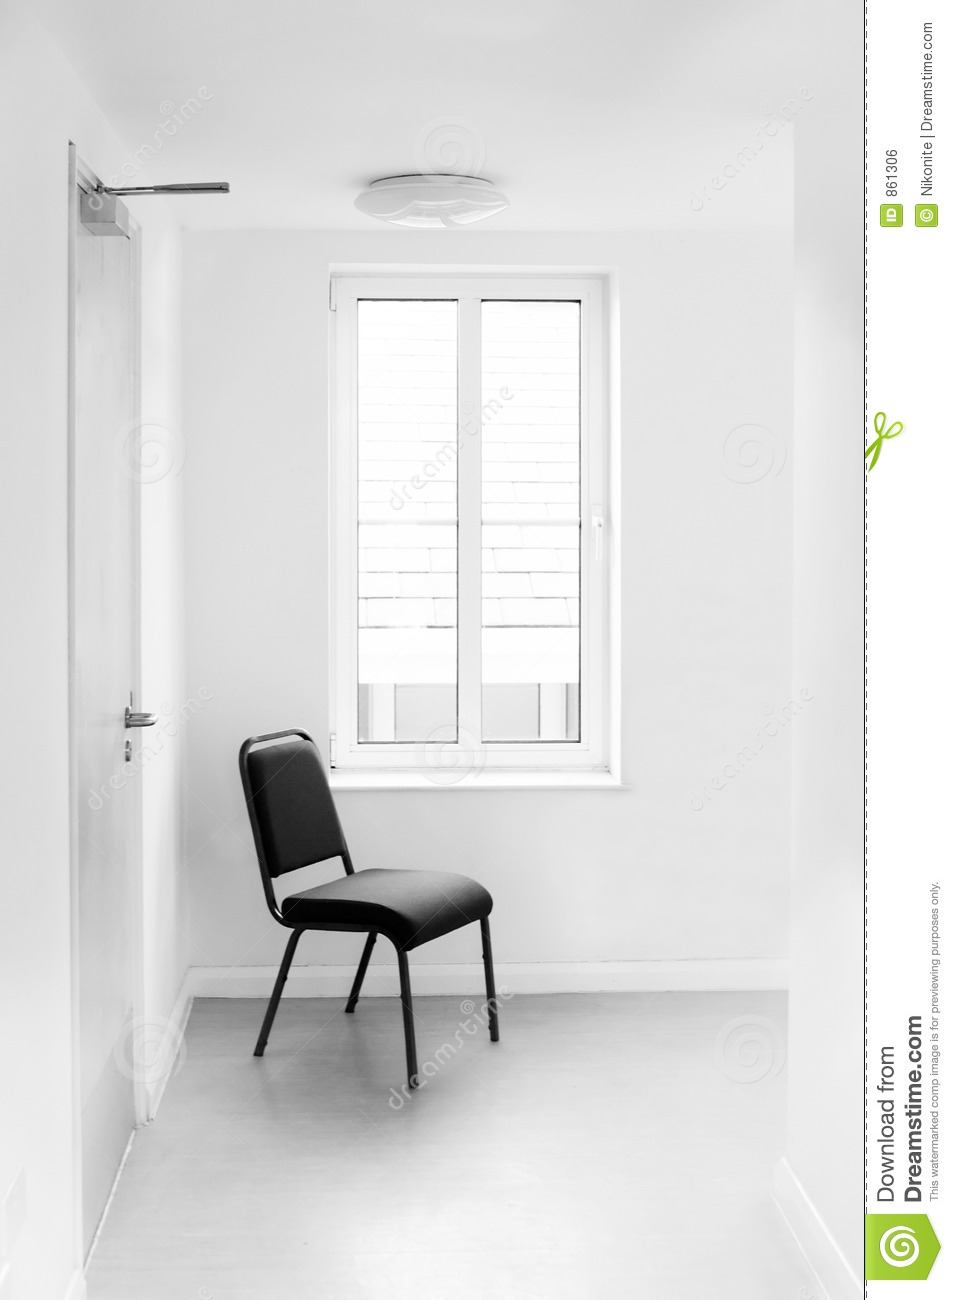 Chair In White Hospital Room Stock Photo Image Of Inside